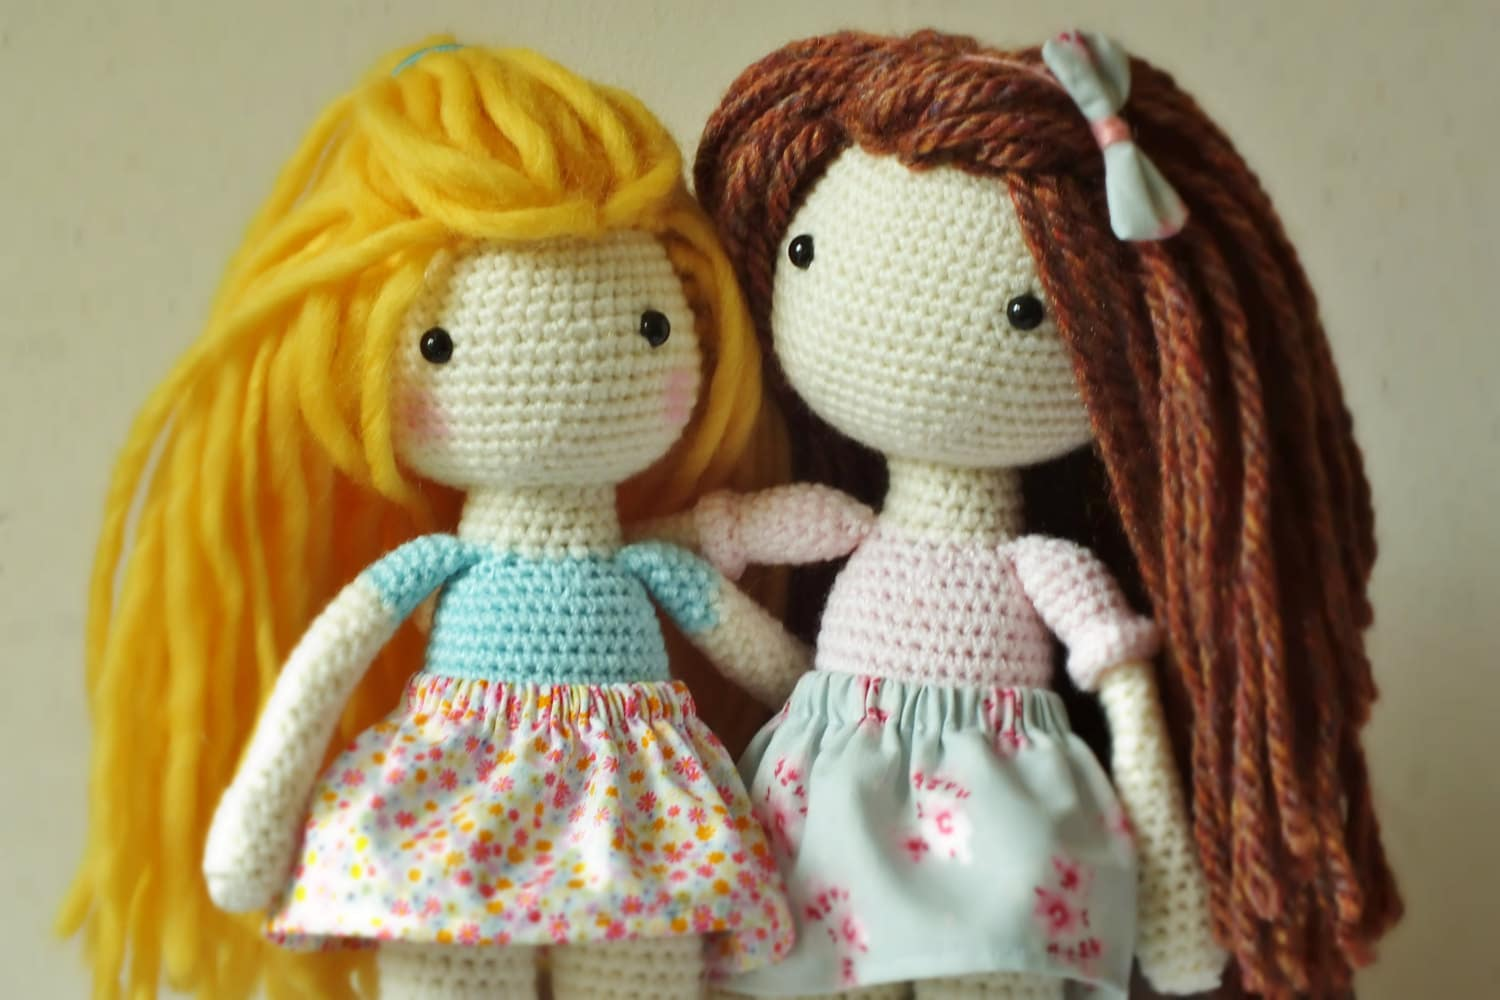 Crochet Amigurumi Doll PATTERN ONLY PDF Instant Download